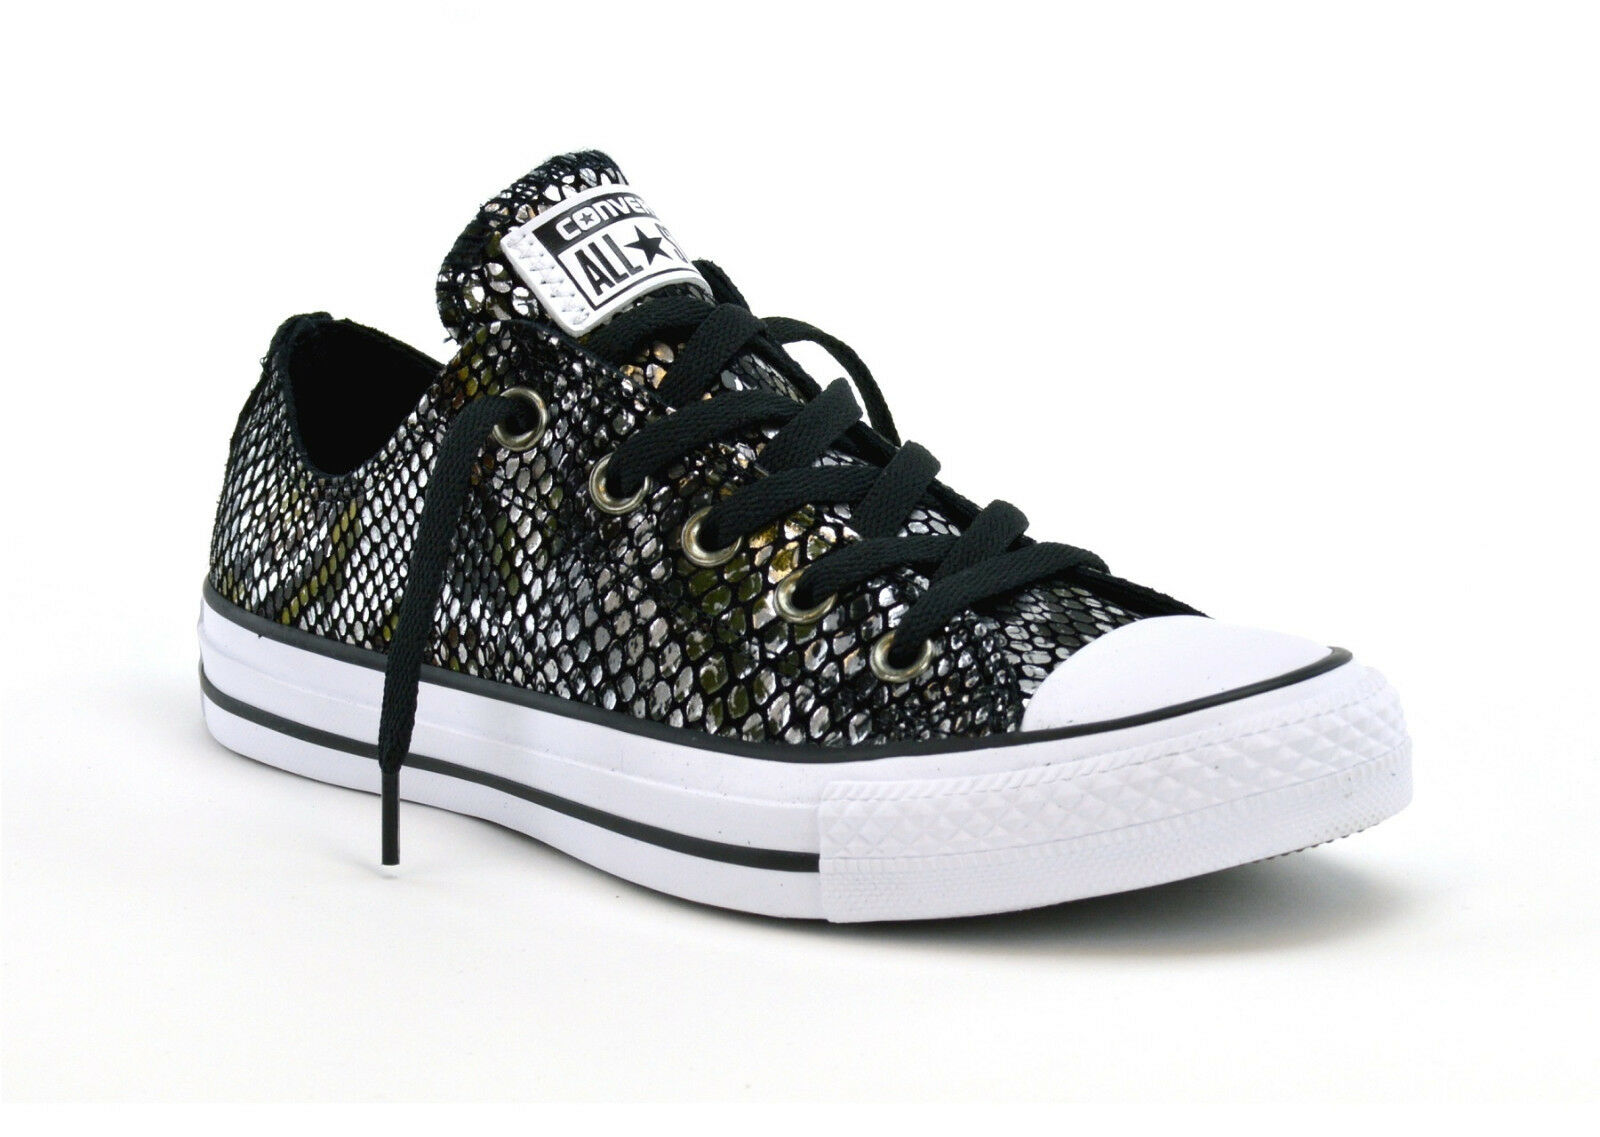 CONVERSE CT BLL STBR LEBTHER SNBKE OX - 557981C -WOMENS SNEBKERS - BRBND NEW